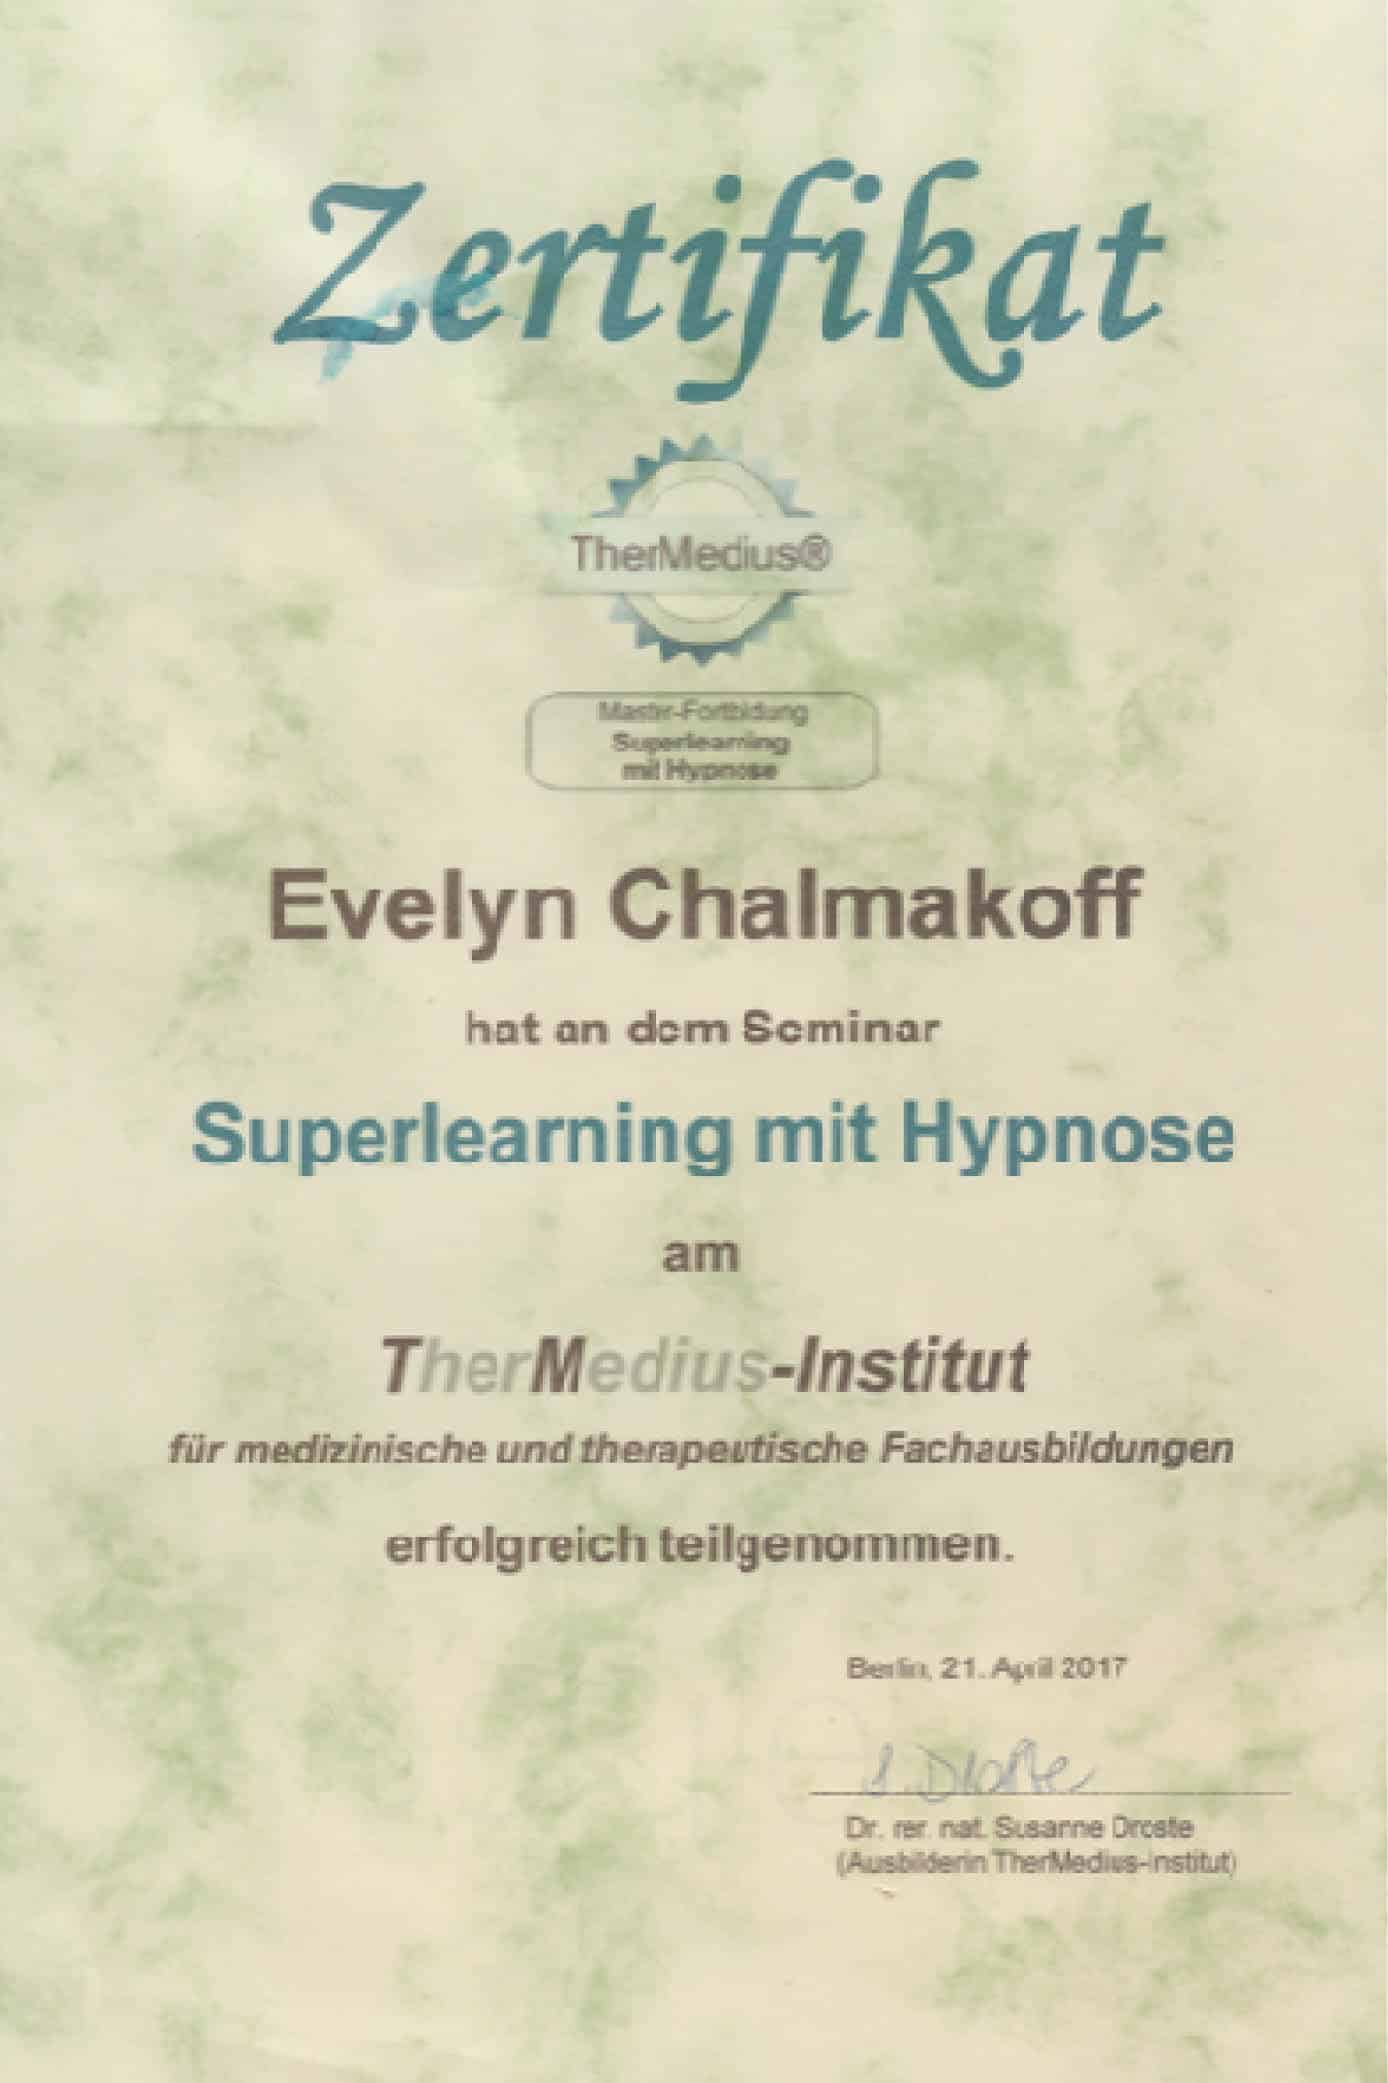 Superlearning mit Hypnose